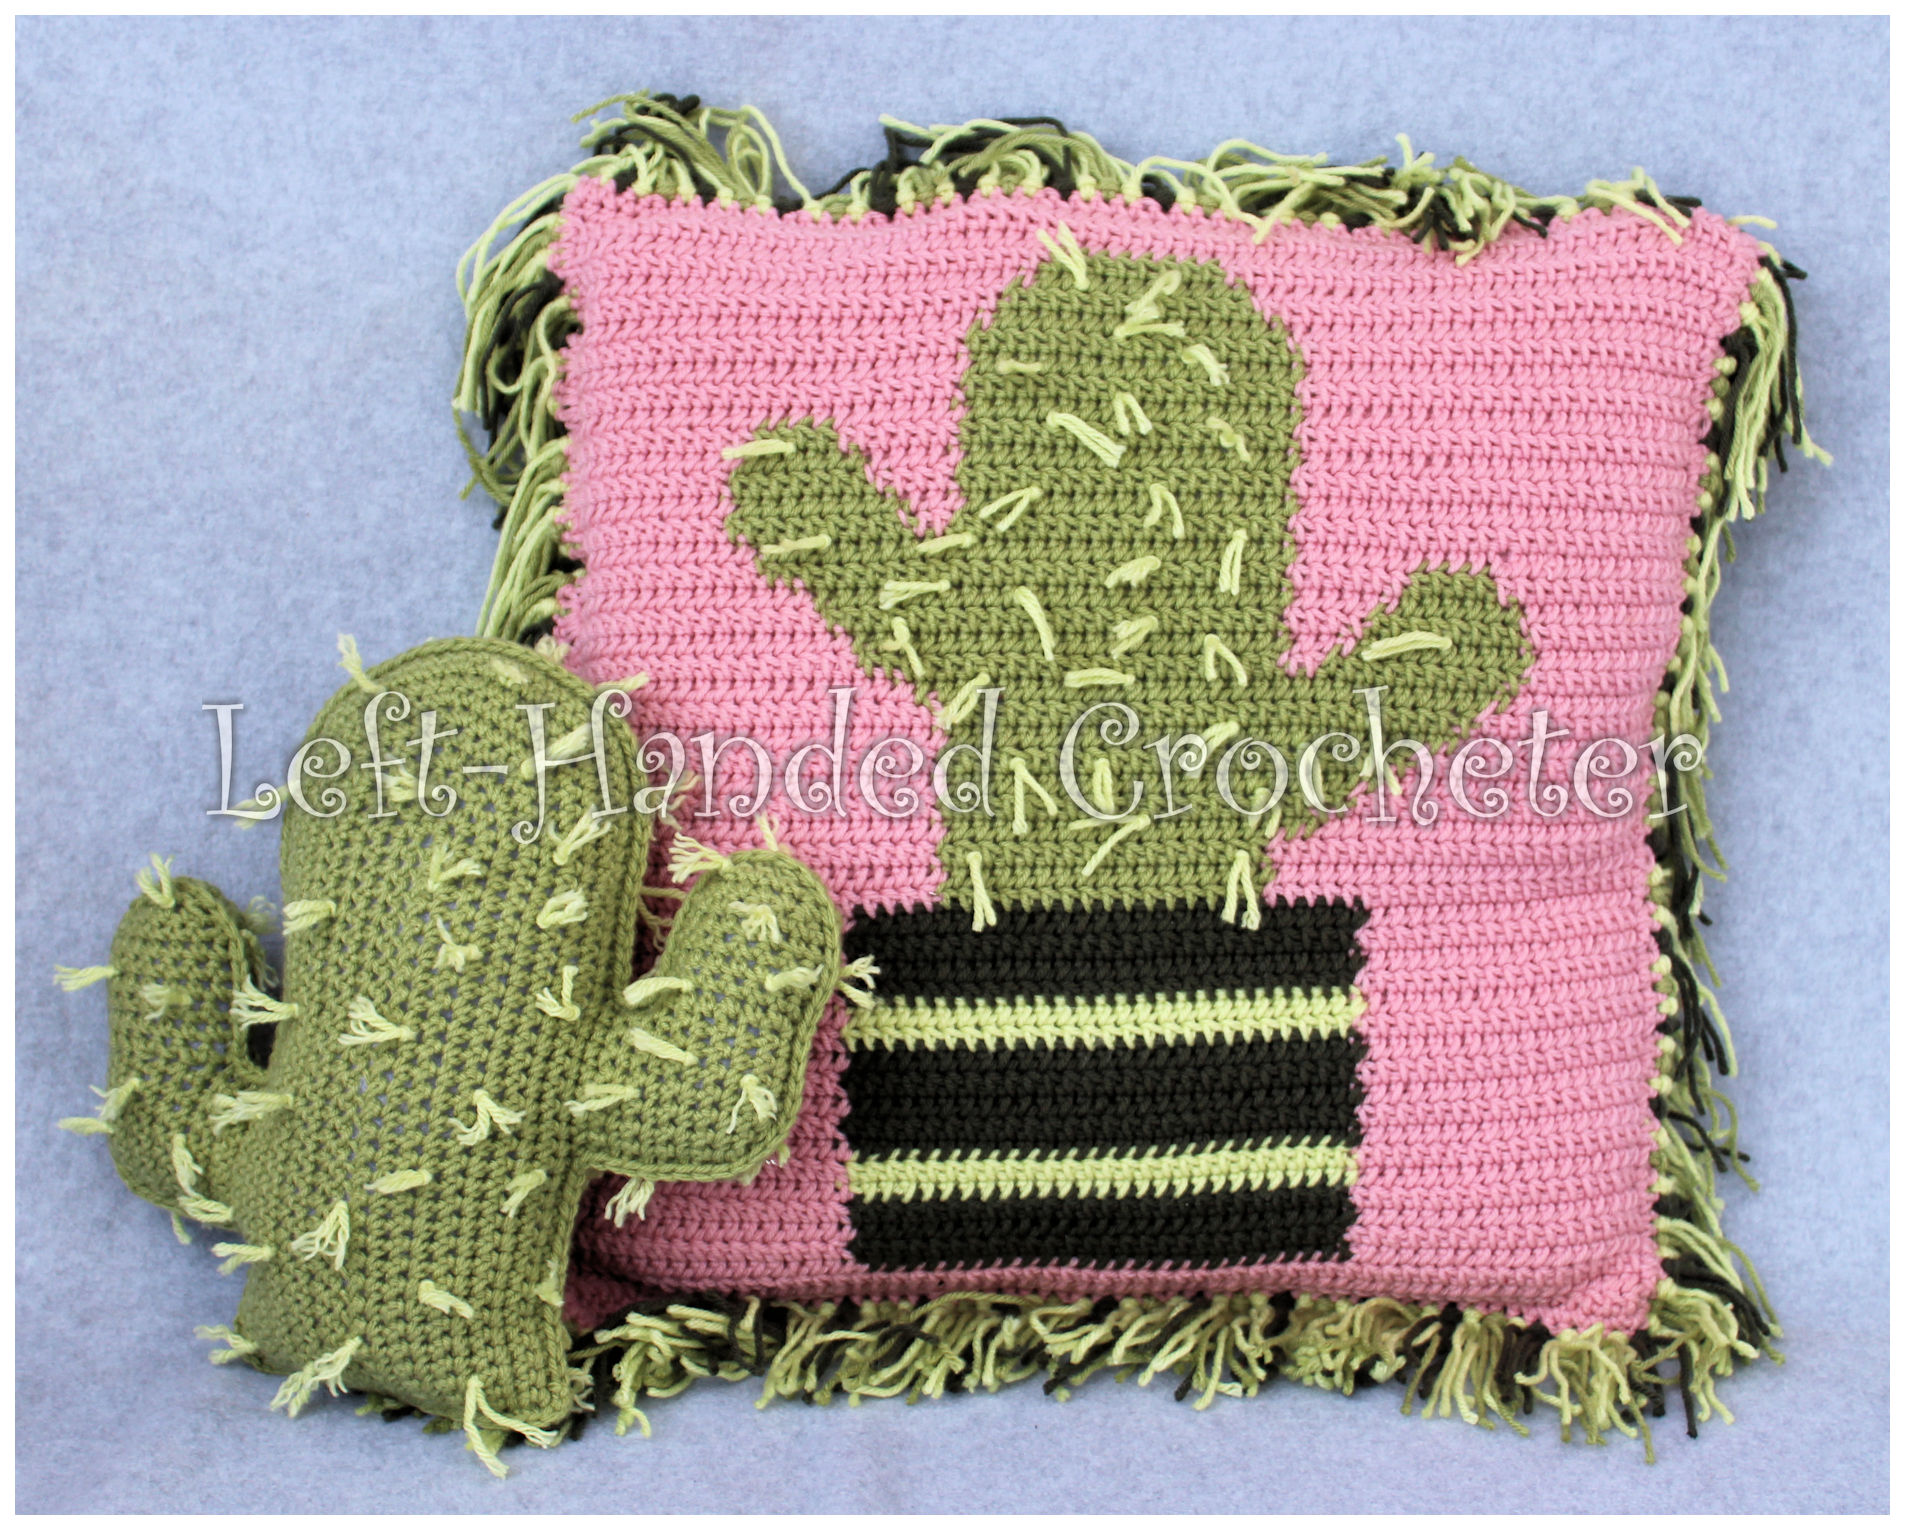 Crochet Cactus Pillow |